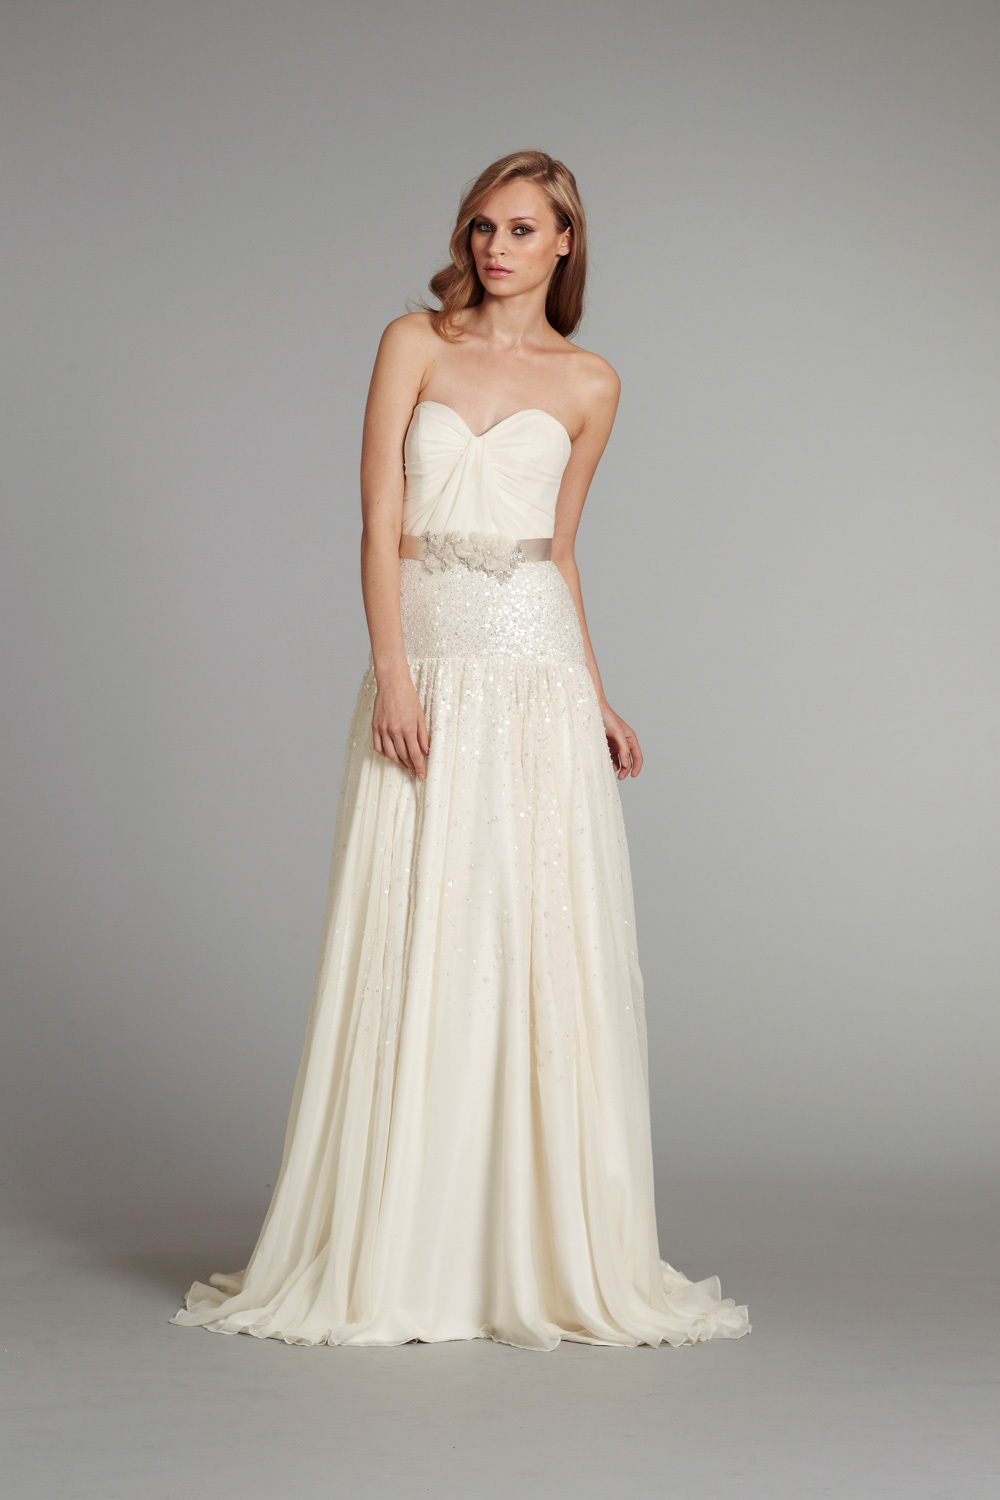 Bridal-gown-wedding-dress-jlm-hayley-paige-fall-2012-prima-front.full